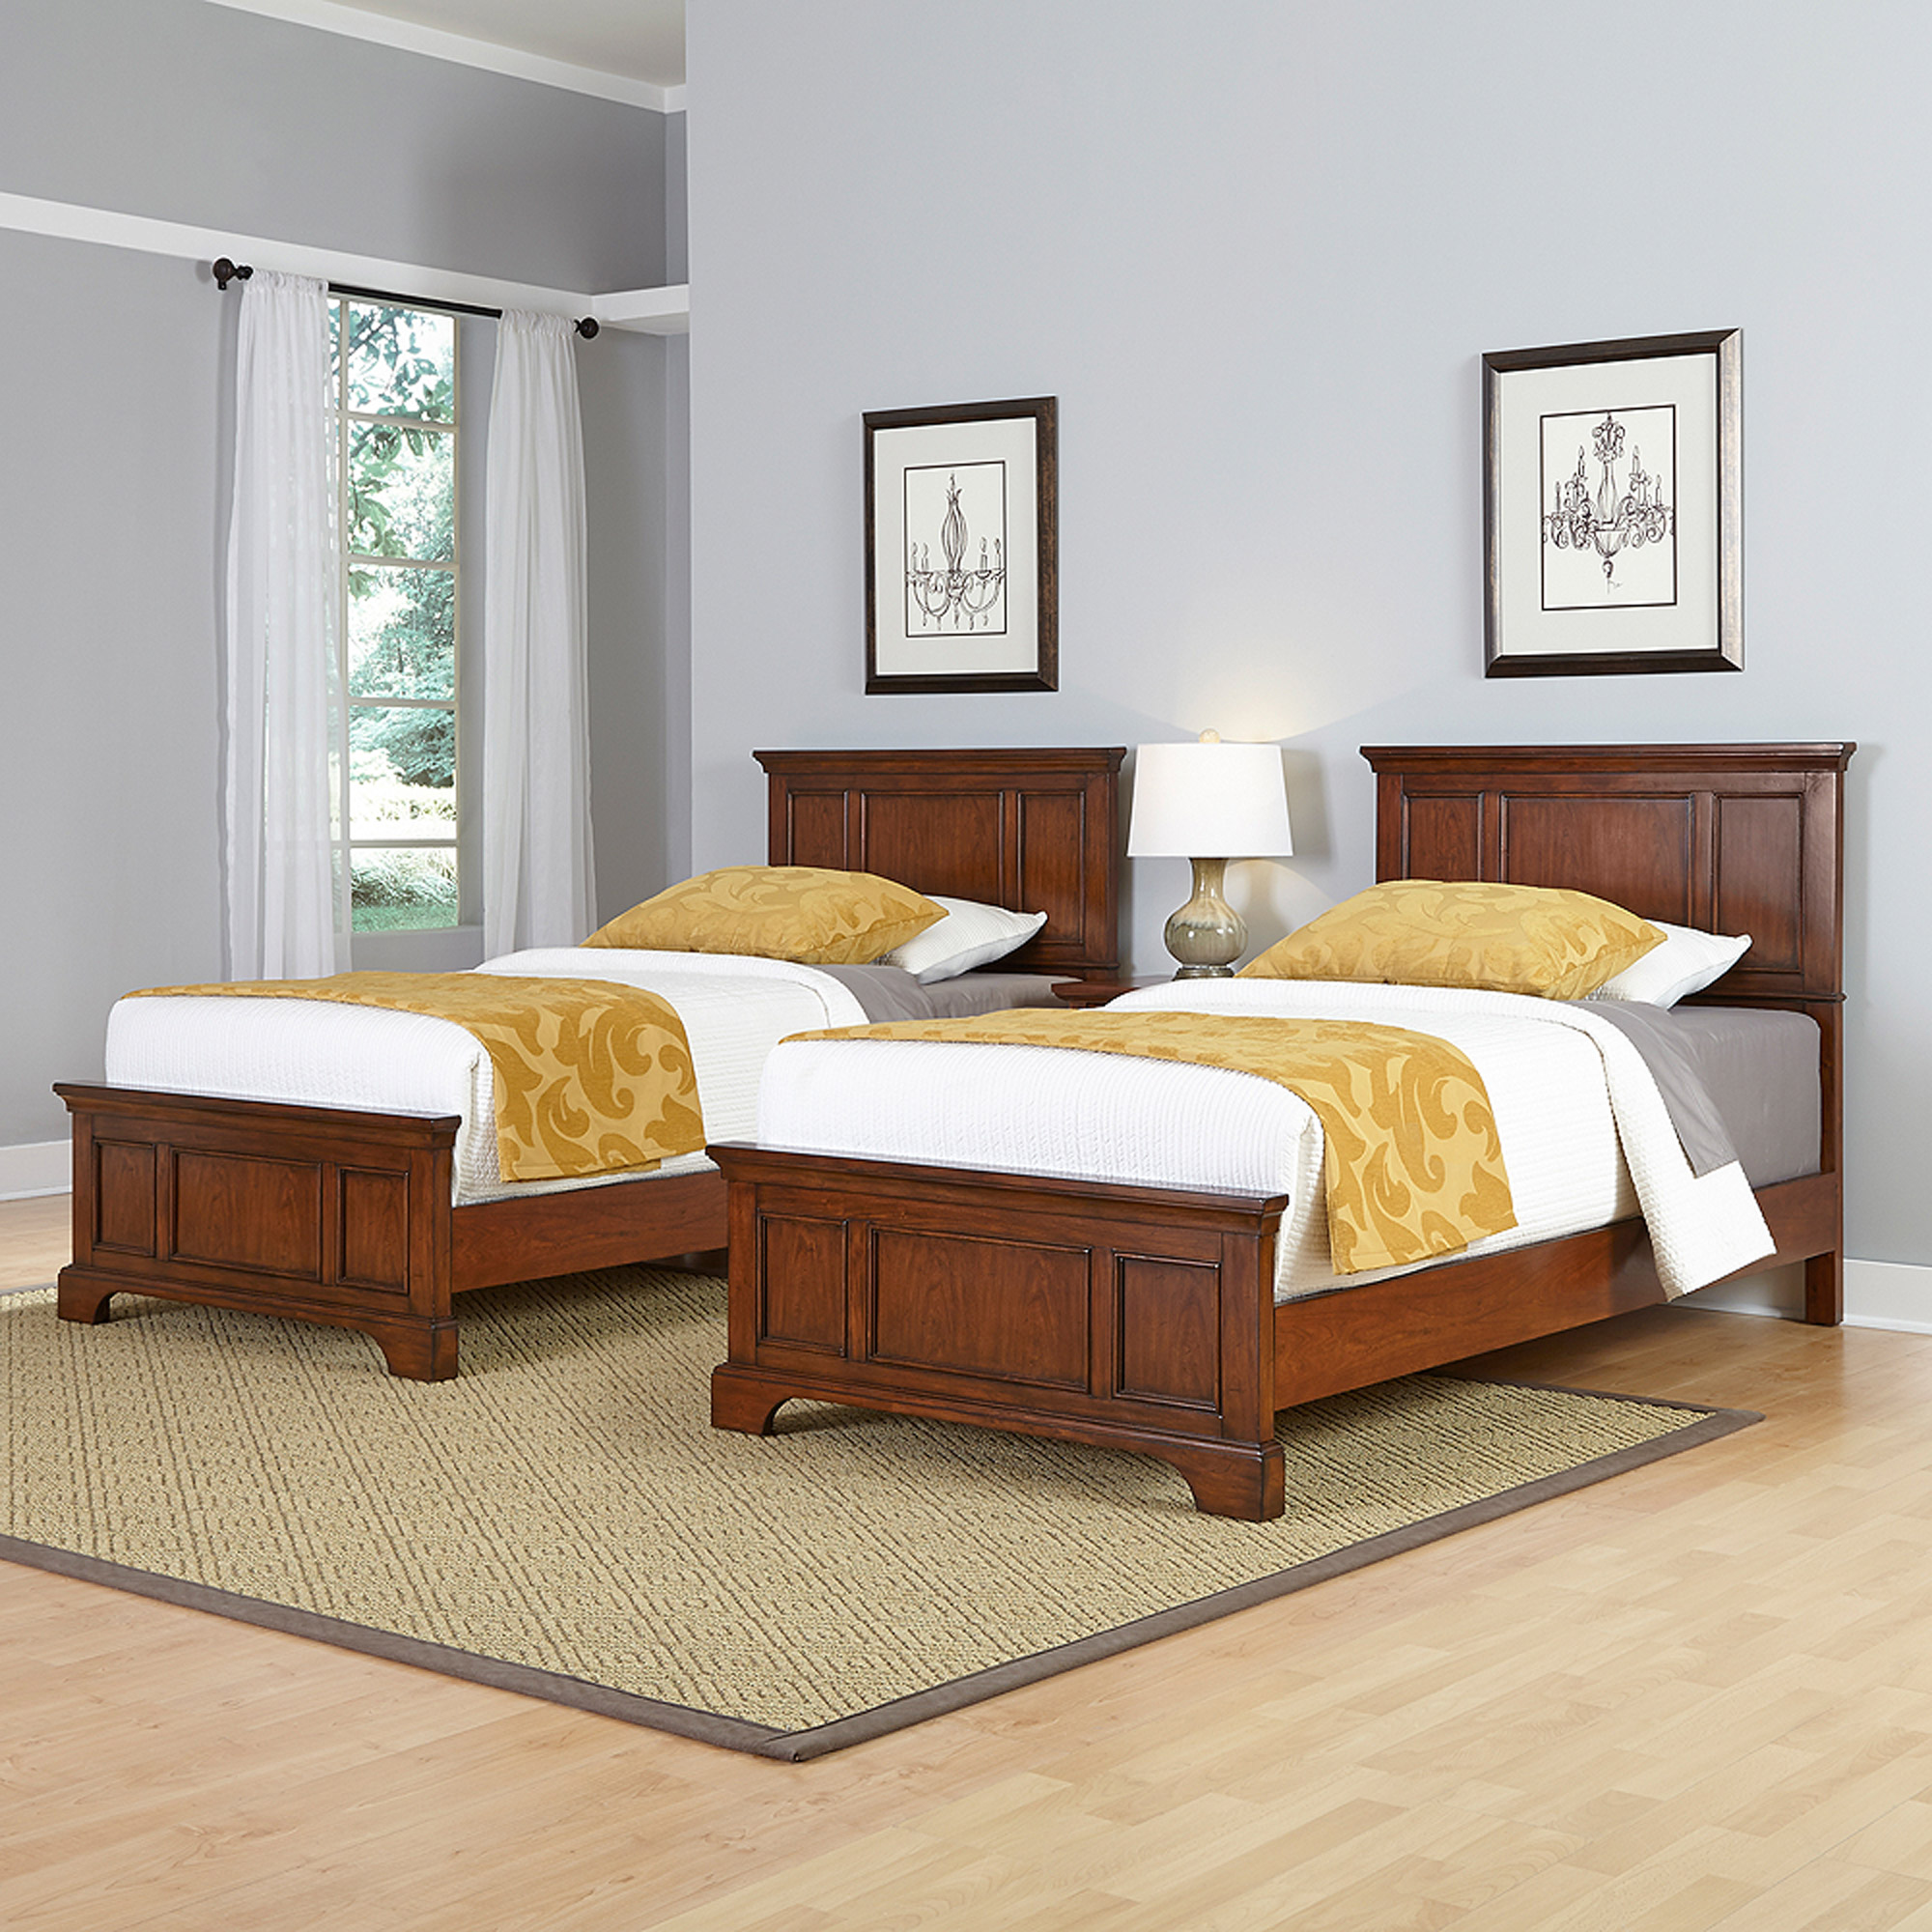 Home Styles Chesapeake 2 Twin Beds and Night Stand